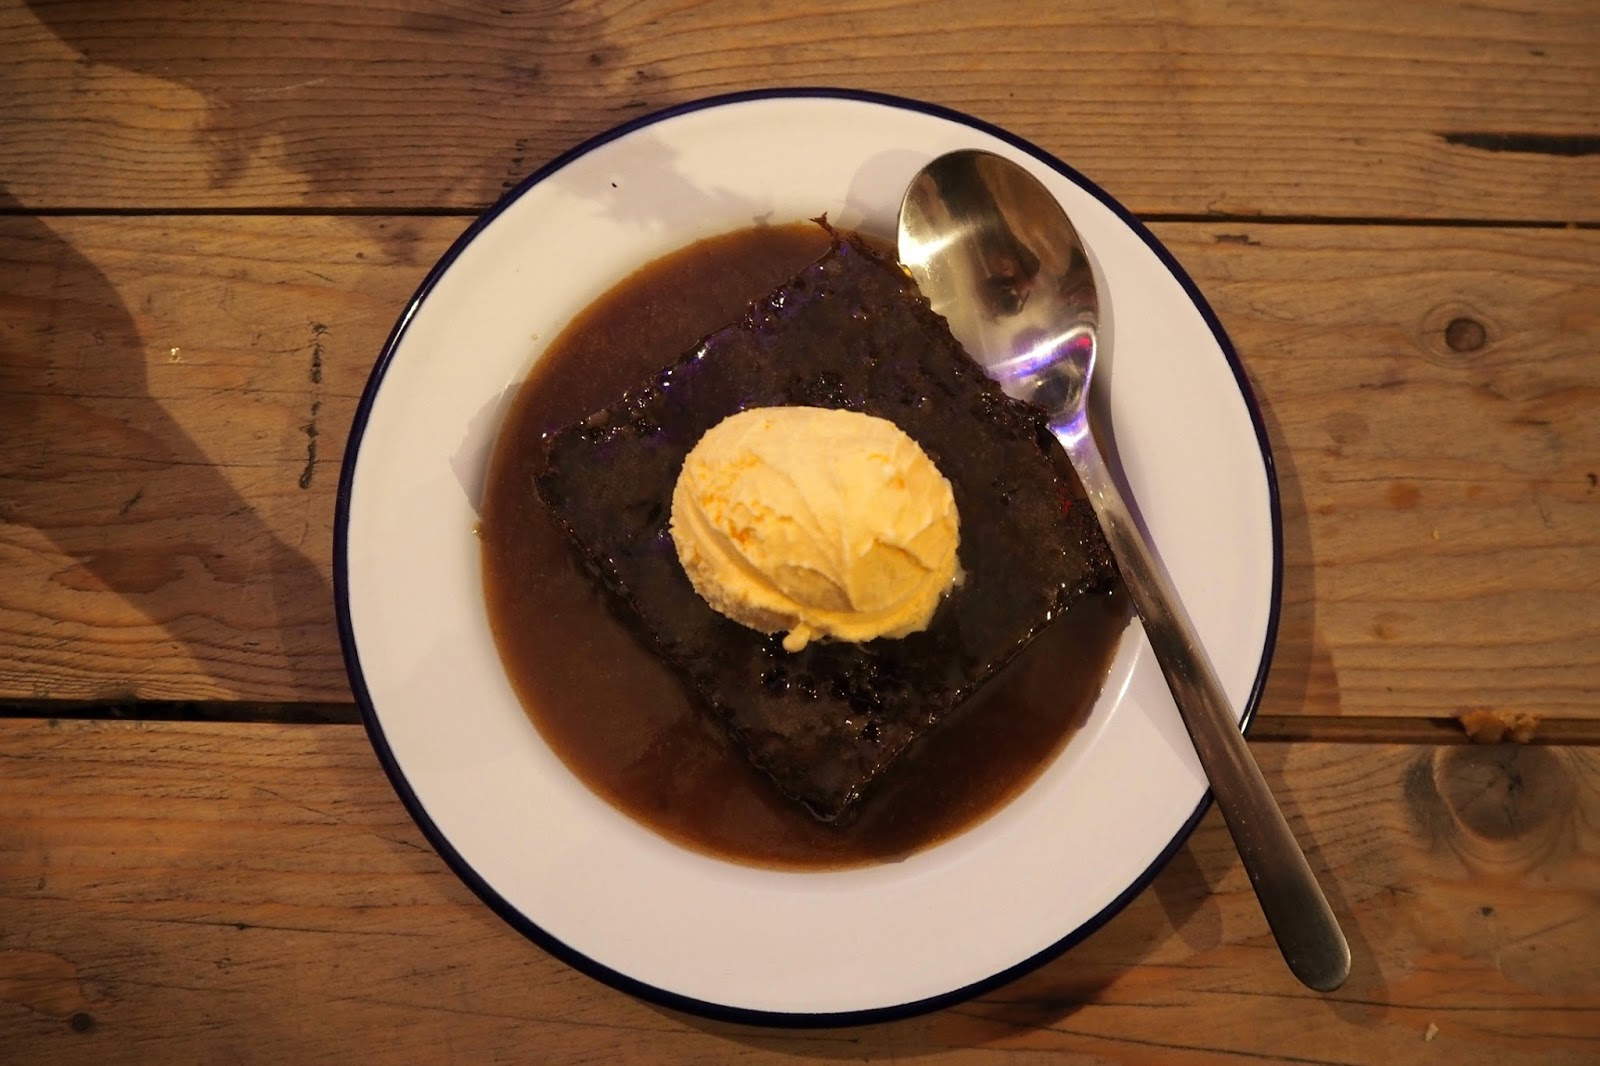 plate of sticky toffee pudding and sauce